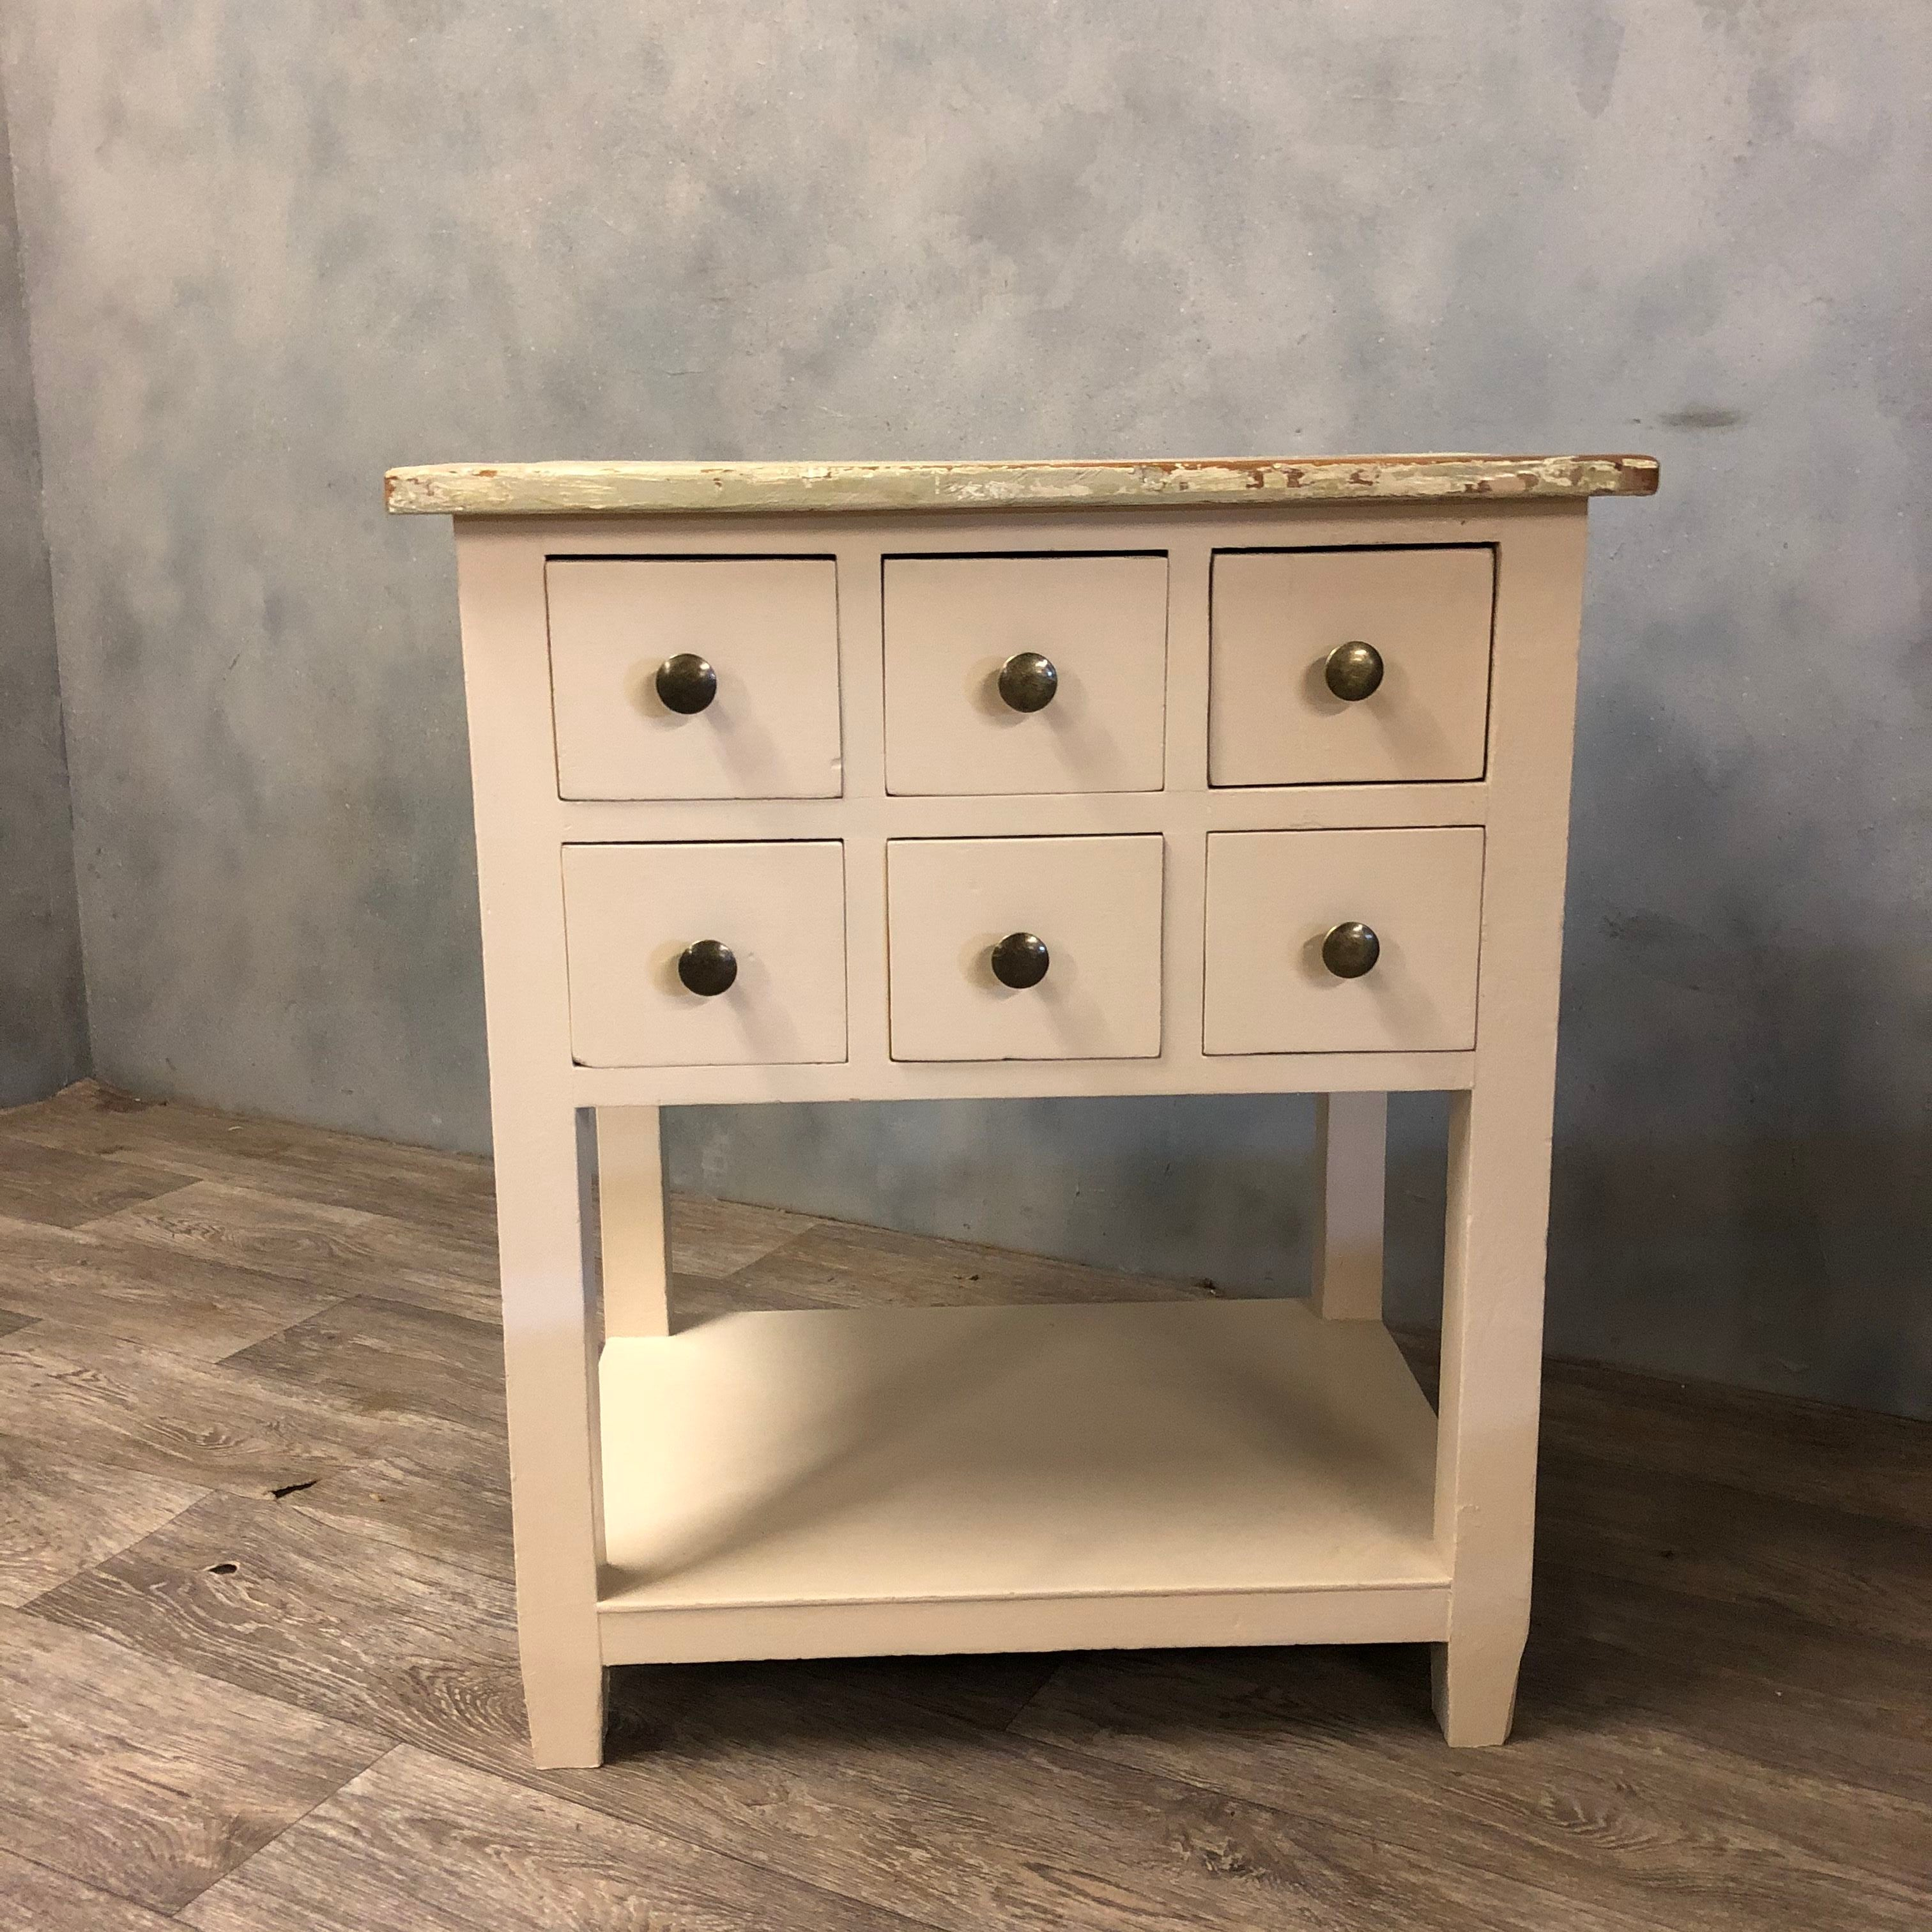 Vintage work cabinet with 6 drawers